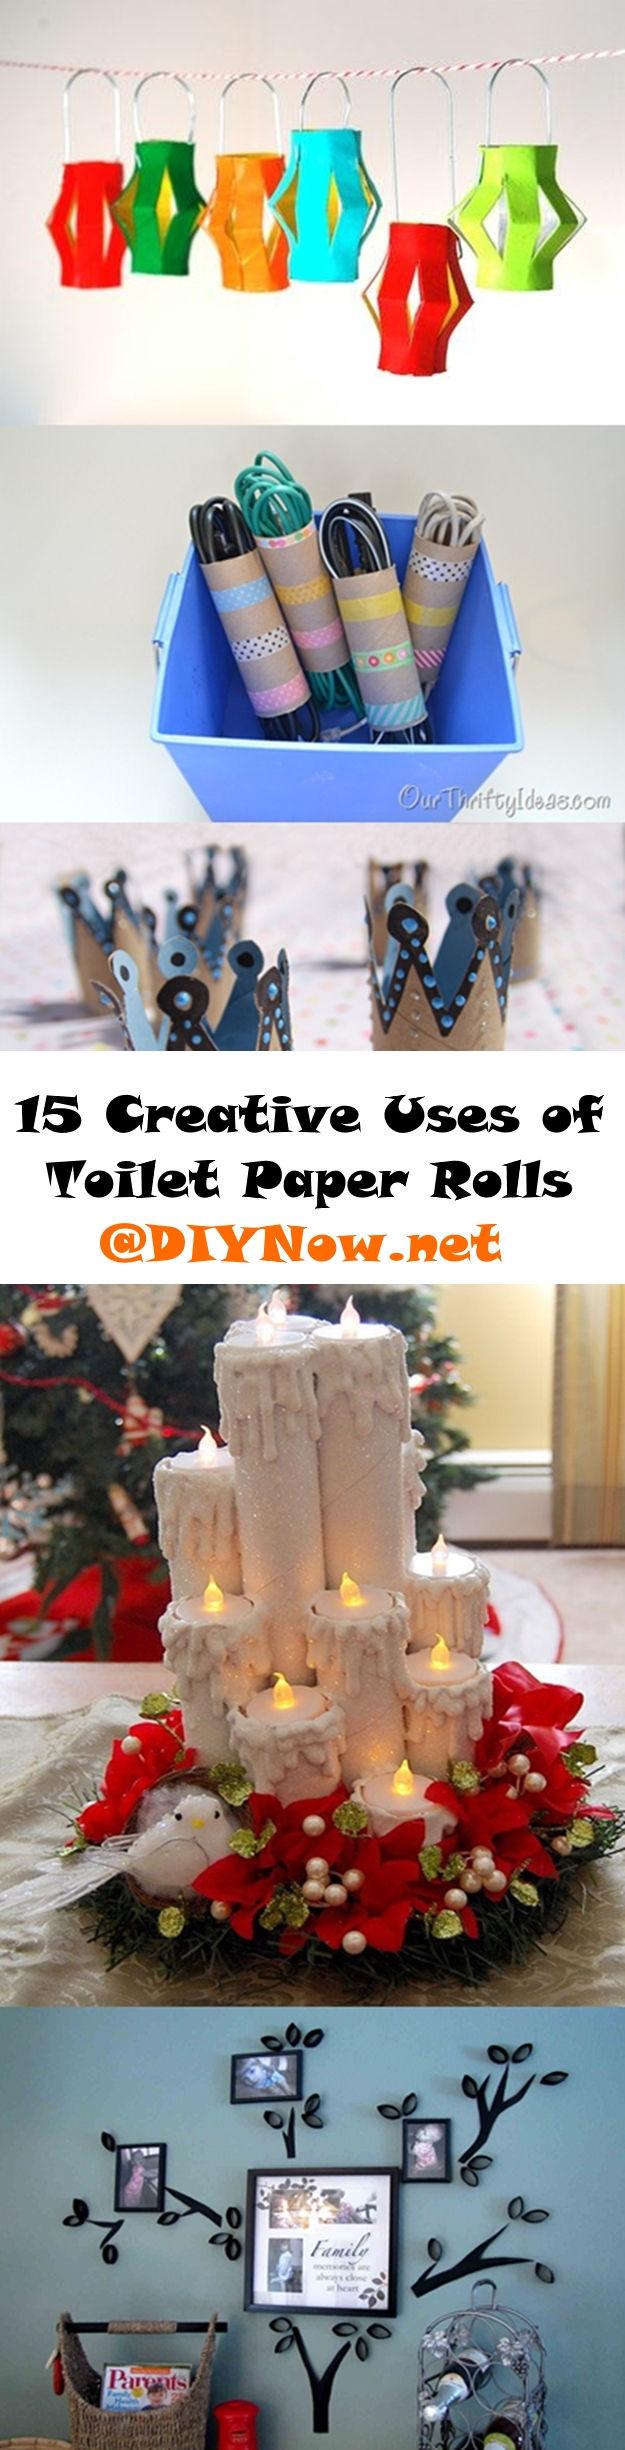 15 Creative Uses of Toilet Paper Rolls